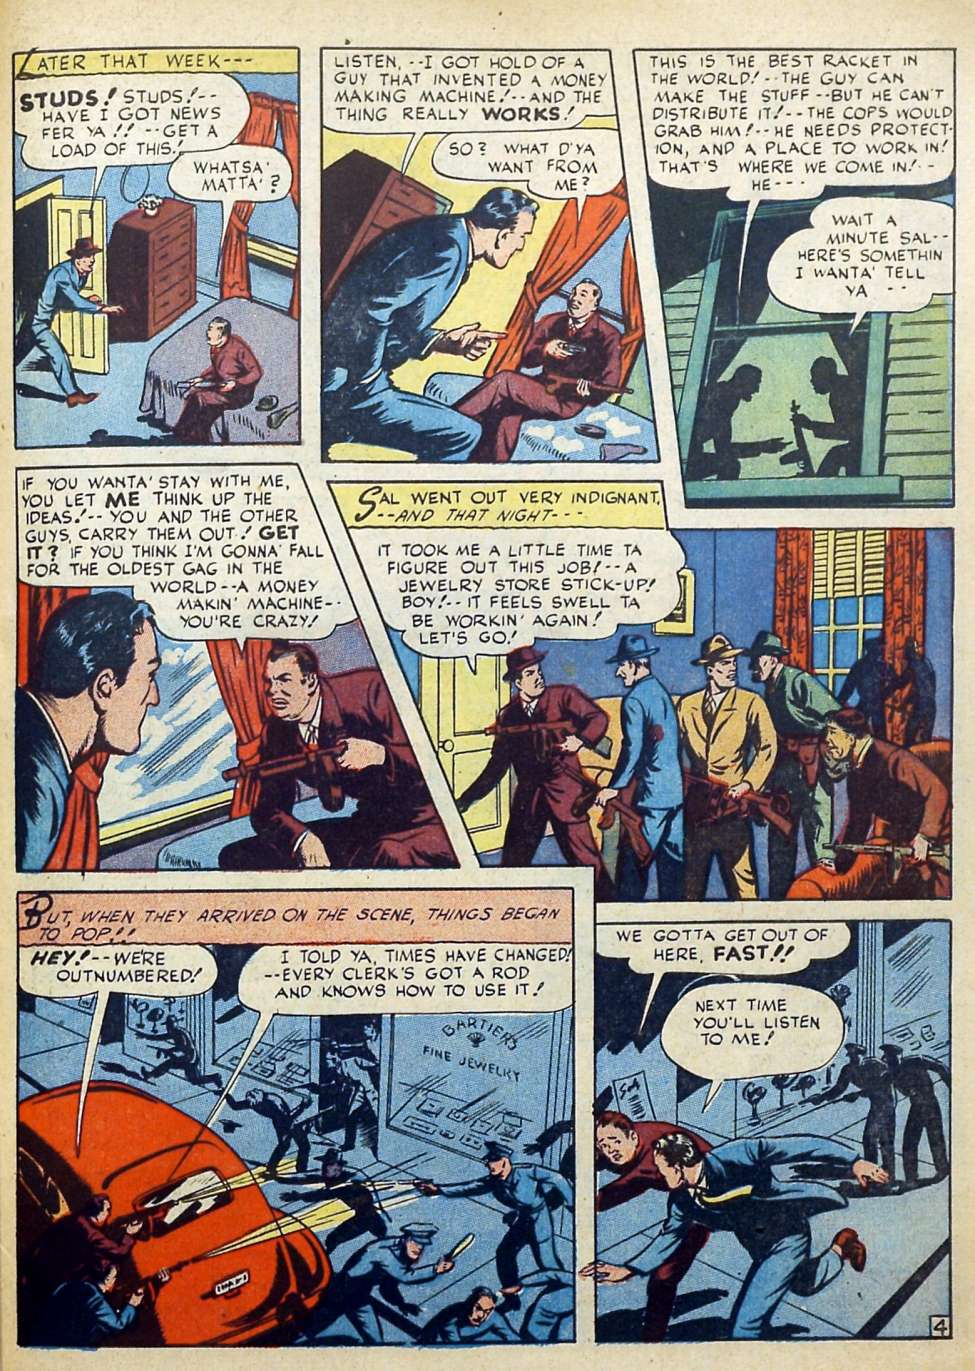 Suspense Comics #3 from 1944 41